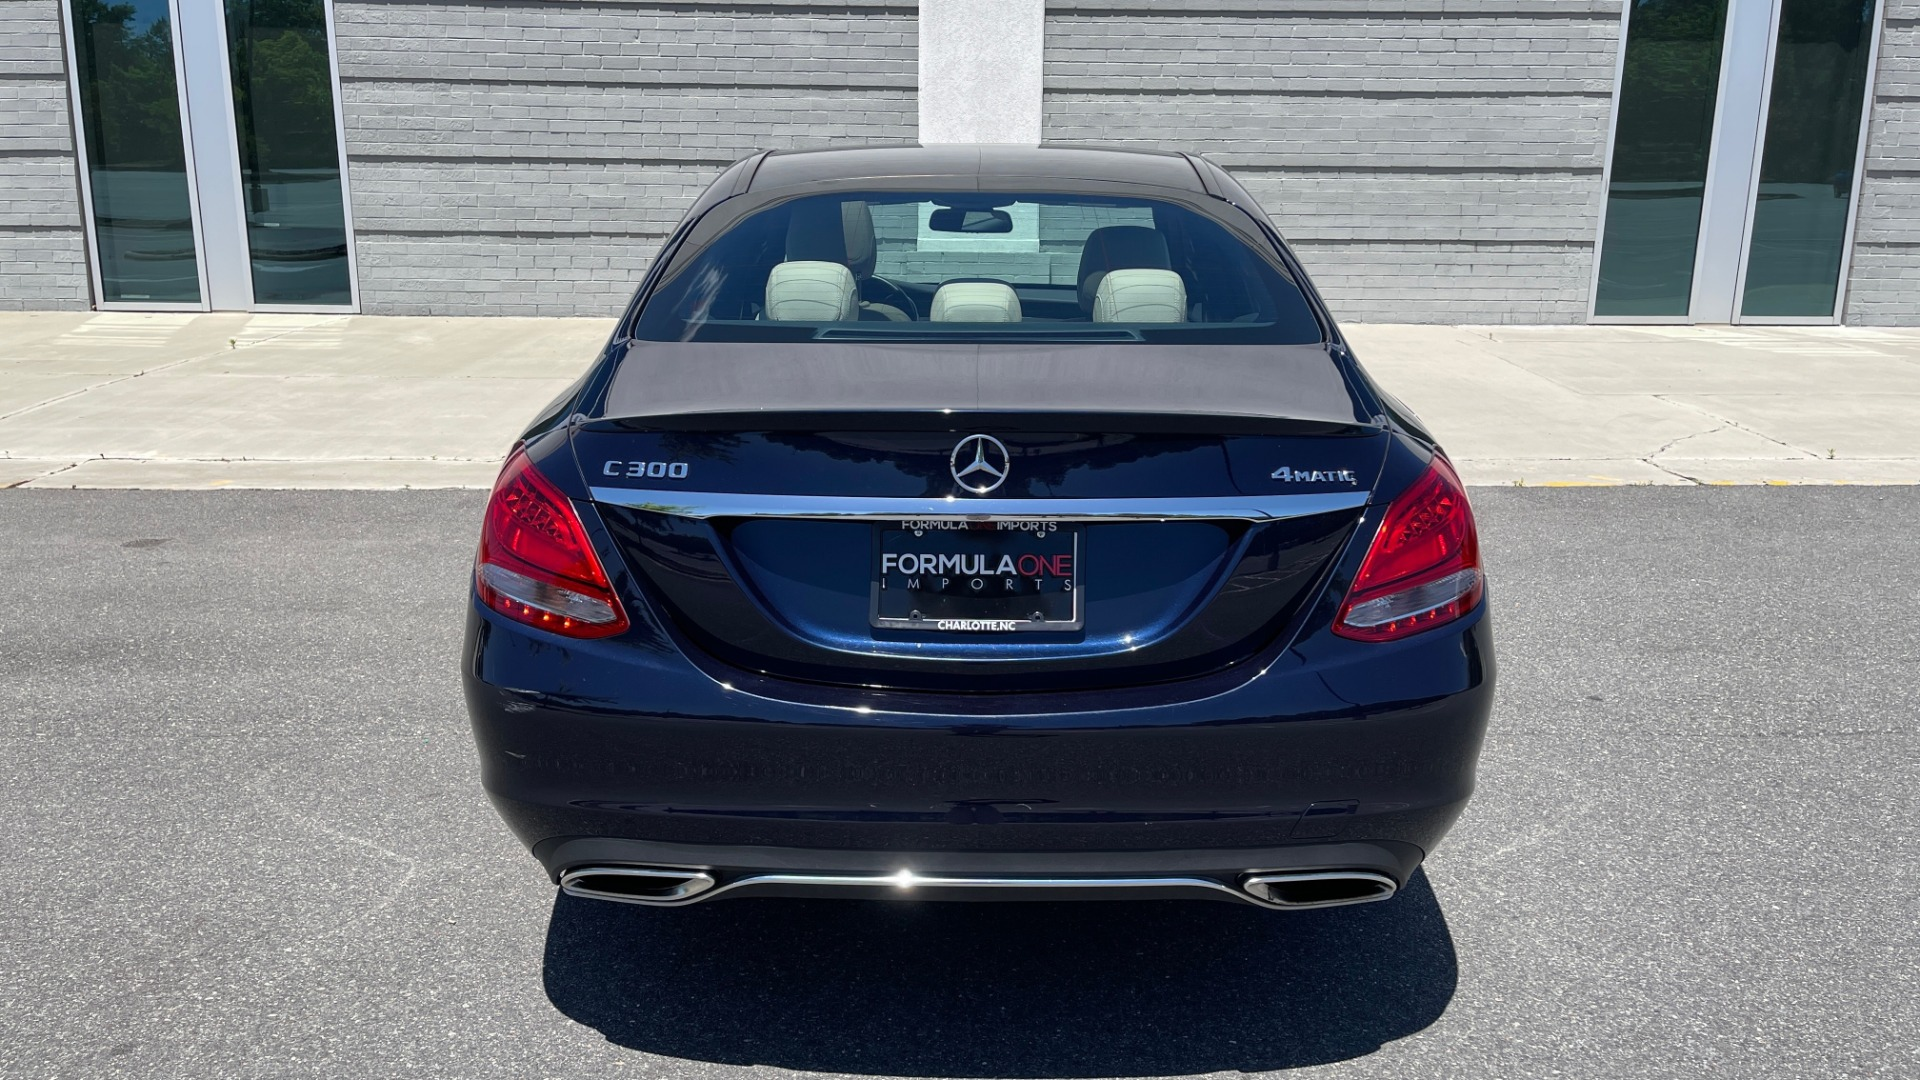 Used 2018 Mercedes-Benz C-CLASS C 300 PREMIUM / KEYLESS-GO / PANO-ROOF / BURMESTER / REARVIEW for sale $29,495 at Formula Imports in Charlotte NC 28227 18